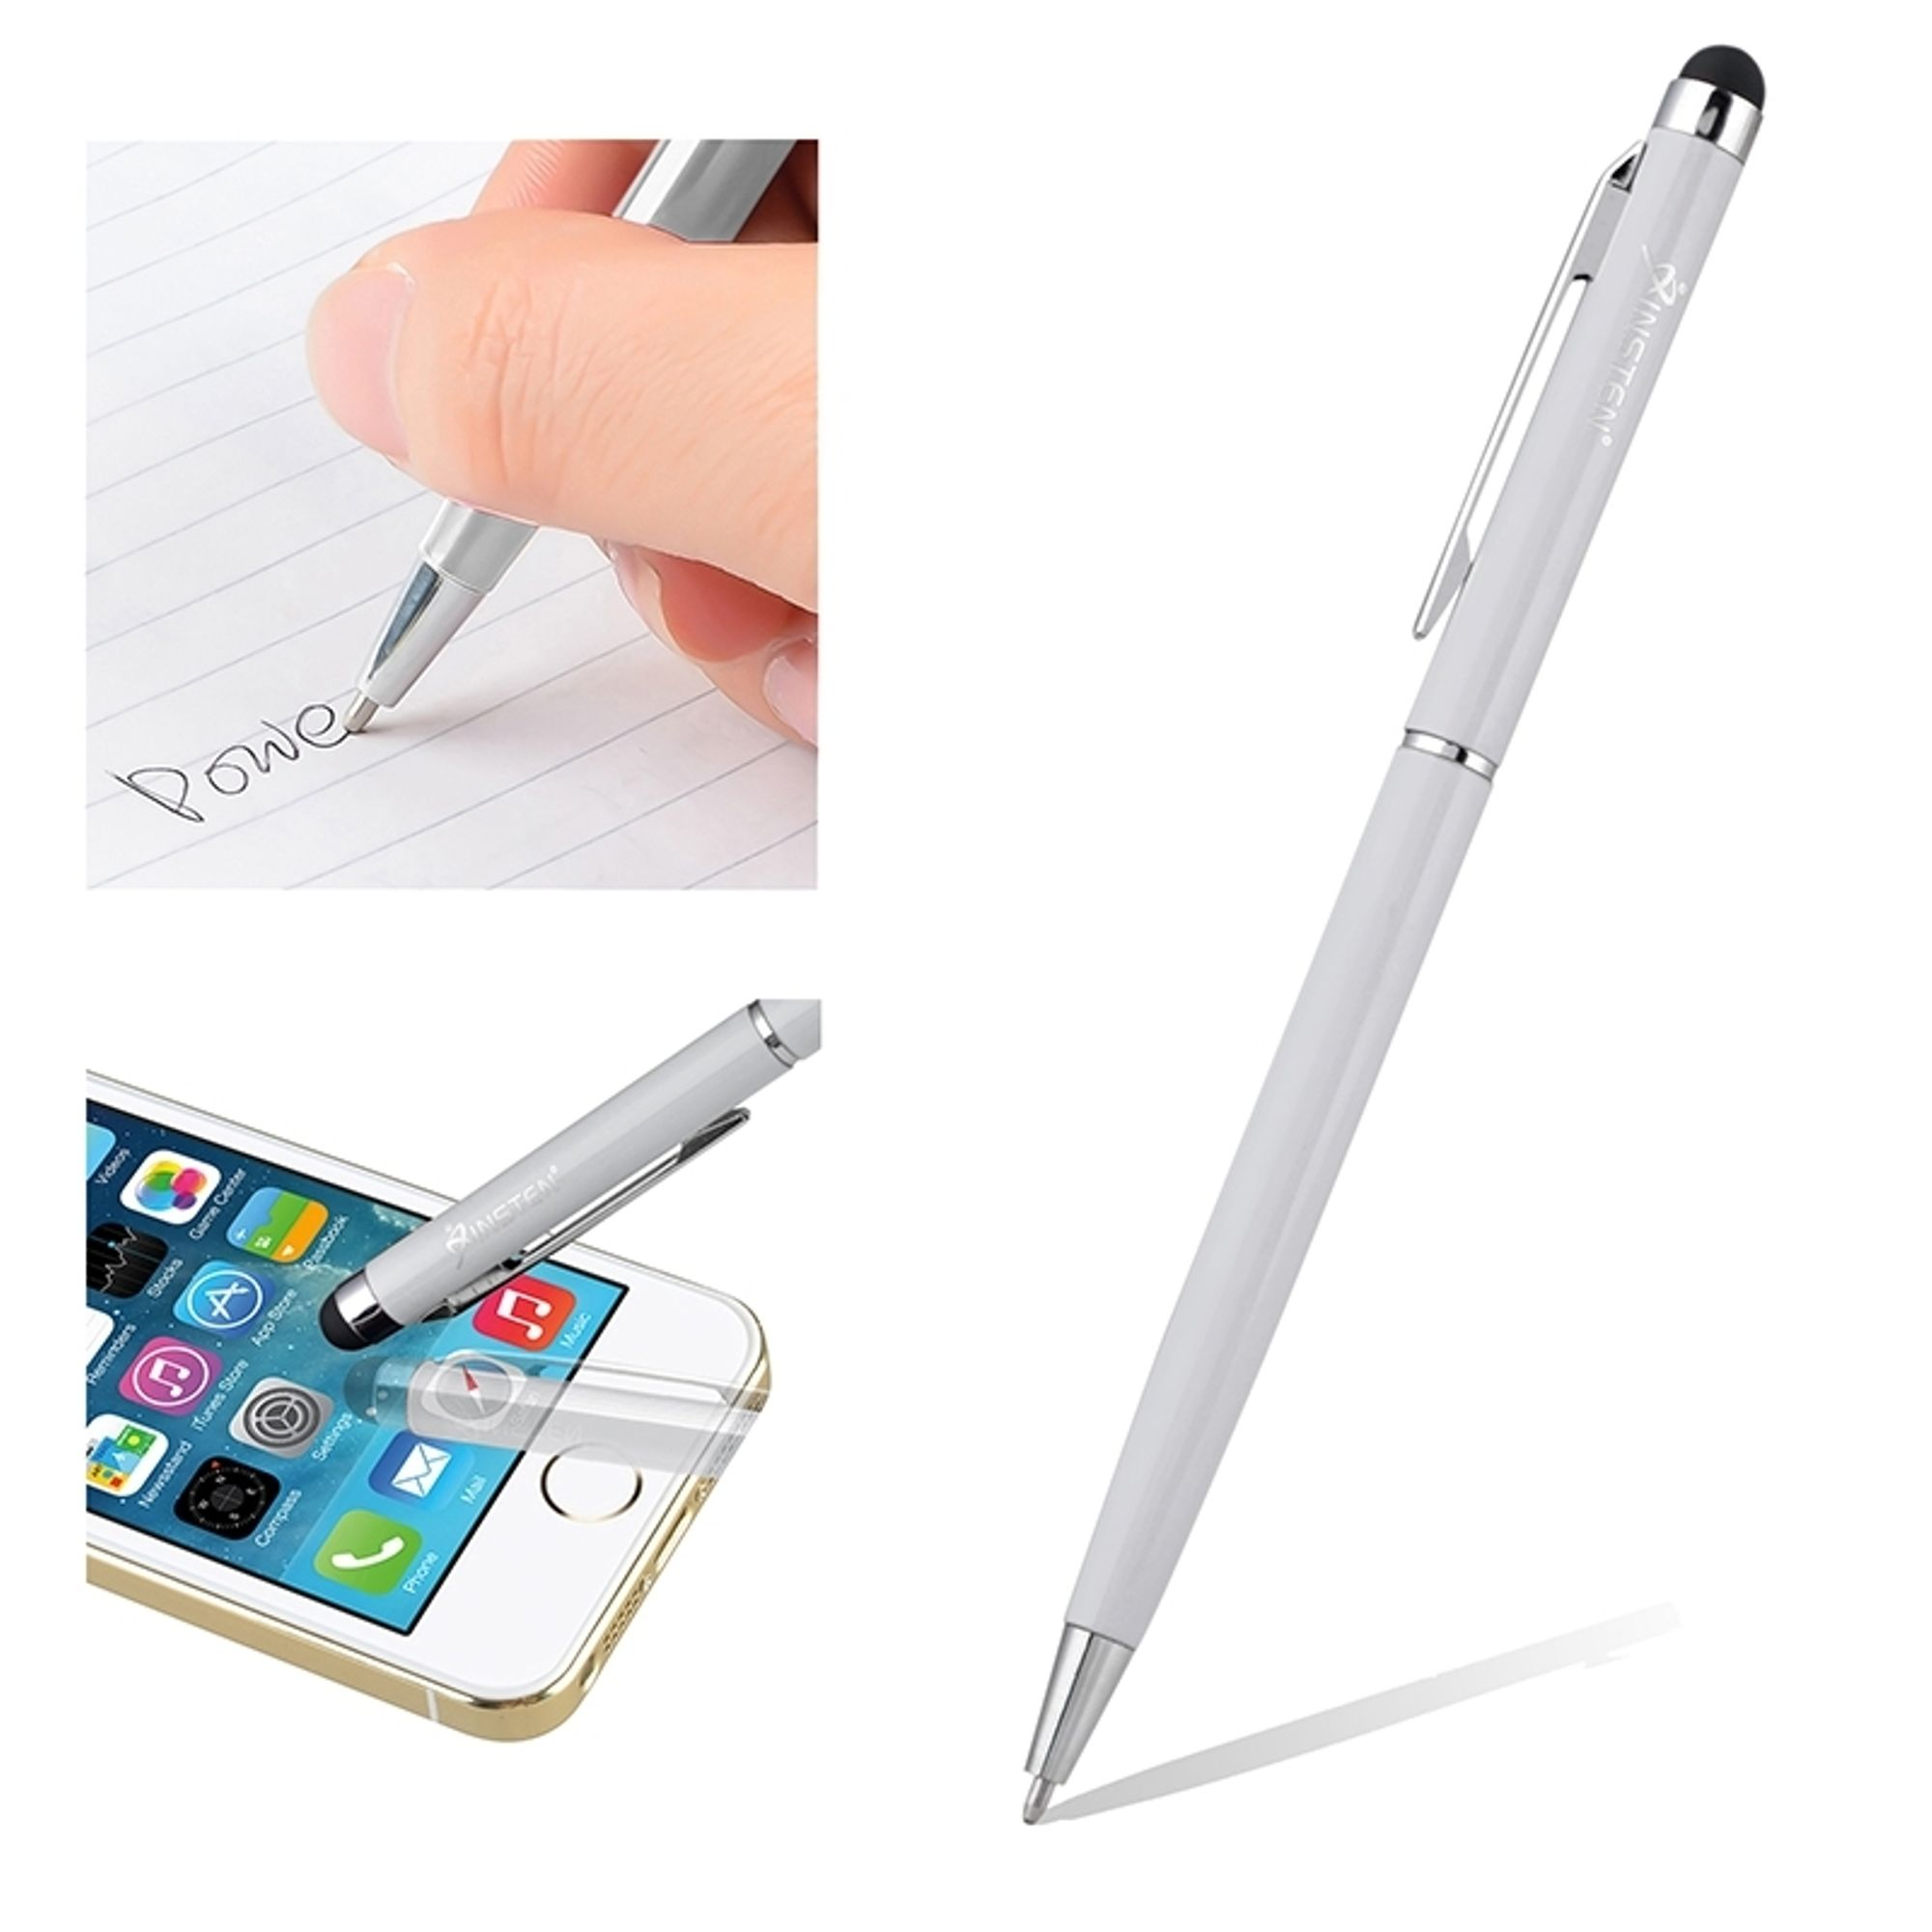 Insten Universal Silver 2in1 Capacitive Touch Screen Stylus with Ball Point Pen For Tab Tablet CellPhone iPhone XS Max XS 7 8 6s 6 Plus iPad Air Pro Mini Samsung Galaxy S7 S8 S9 S10 S10e Plus Edge